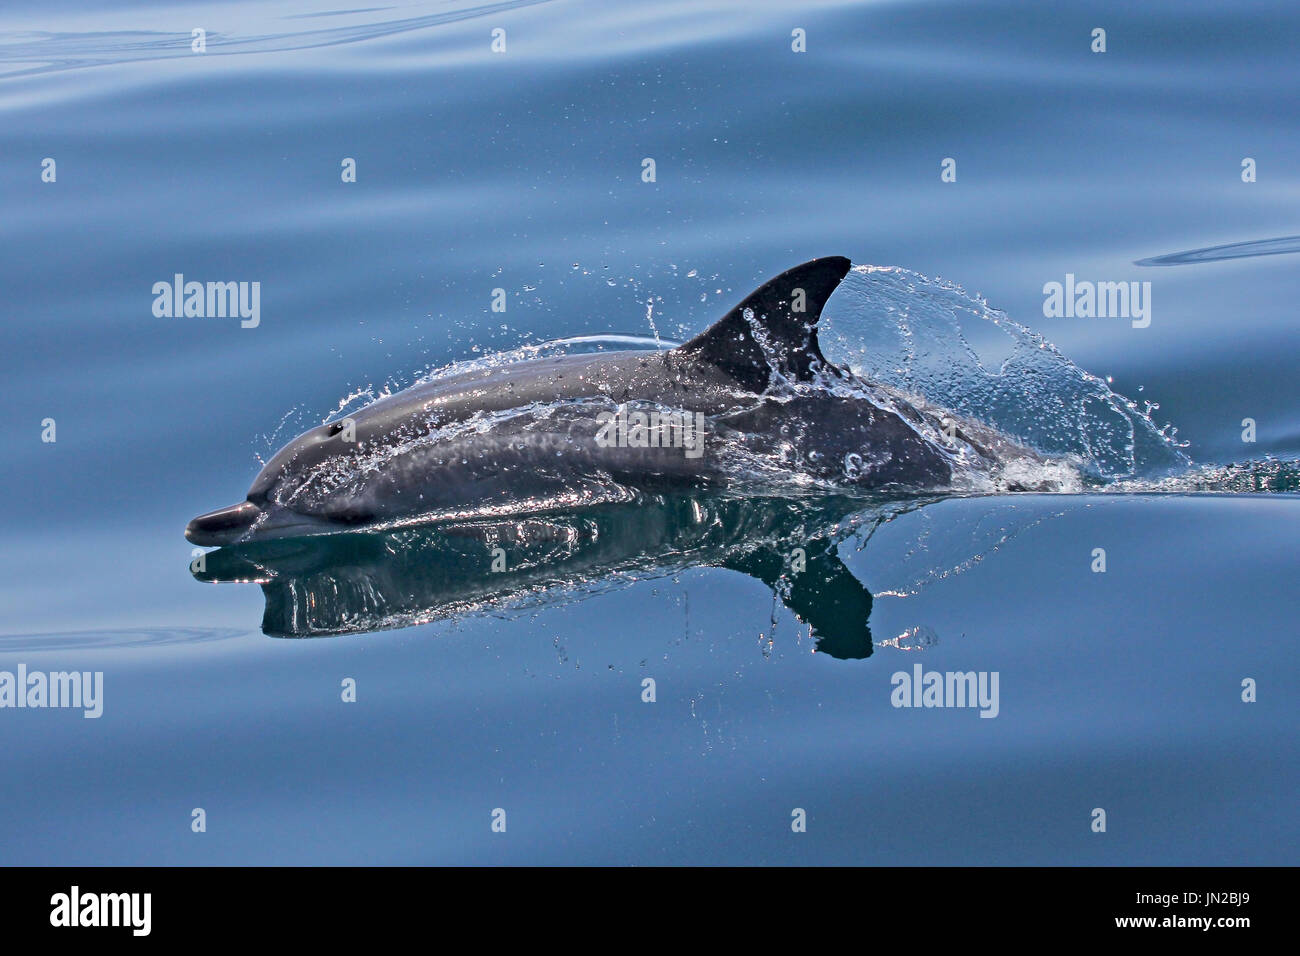 Atlantic Spotted Dolphin (Stenella frontalis) surfacing next to the boat with a glassy calm sea - Stock Image